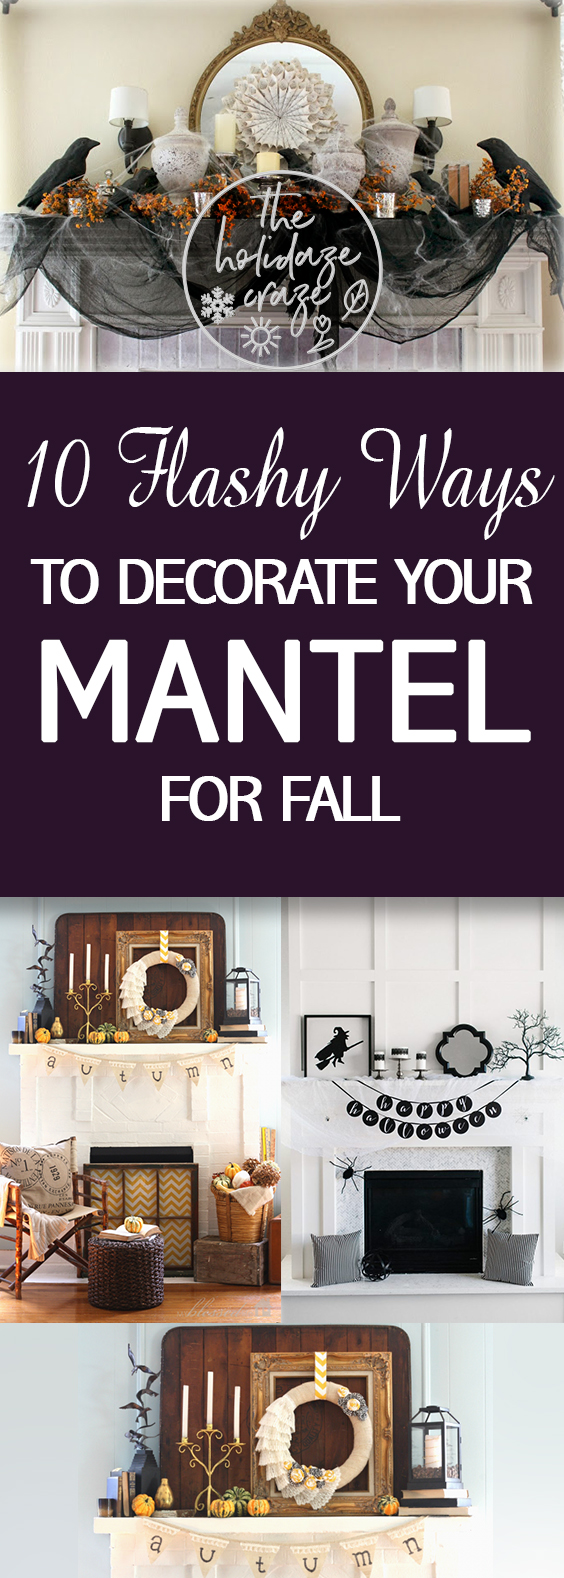 Mantel Decorations, Fall Decorations, DIY Fall Decor, DIY Mantel, Decorating Your Mantel for Fall, DIY Fall, Holiday Home Decor